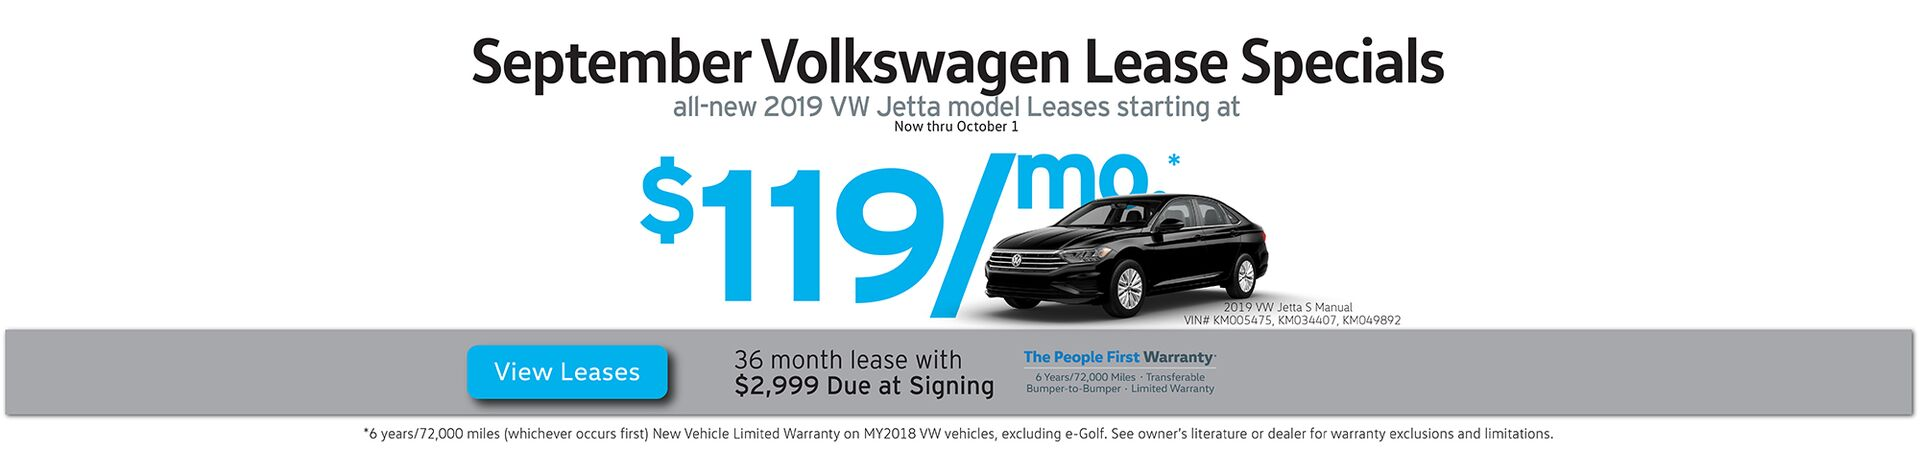 September VW leases starting at $119/mo. for 36 months with $2,999 due at siging